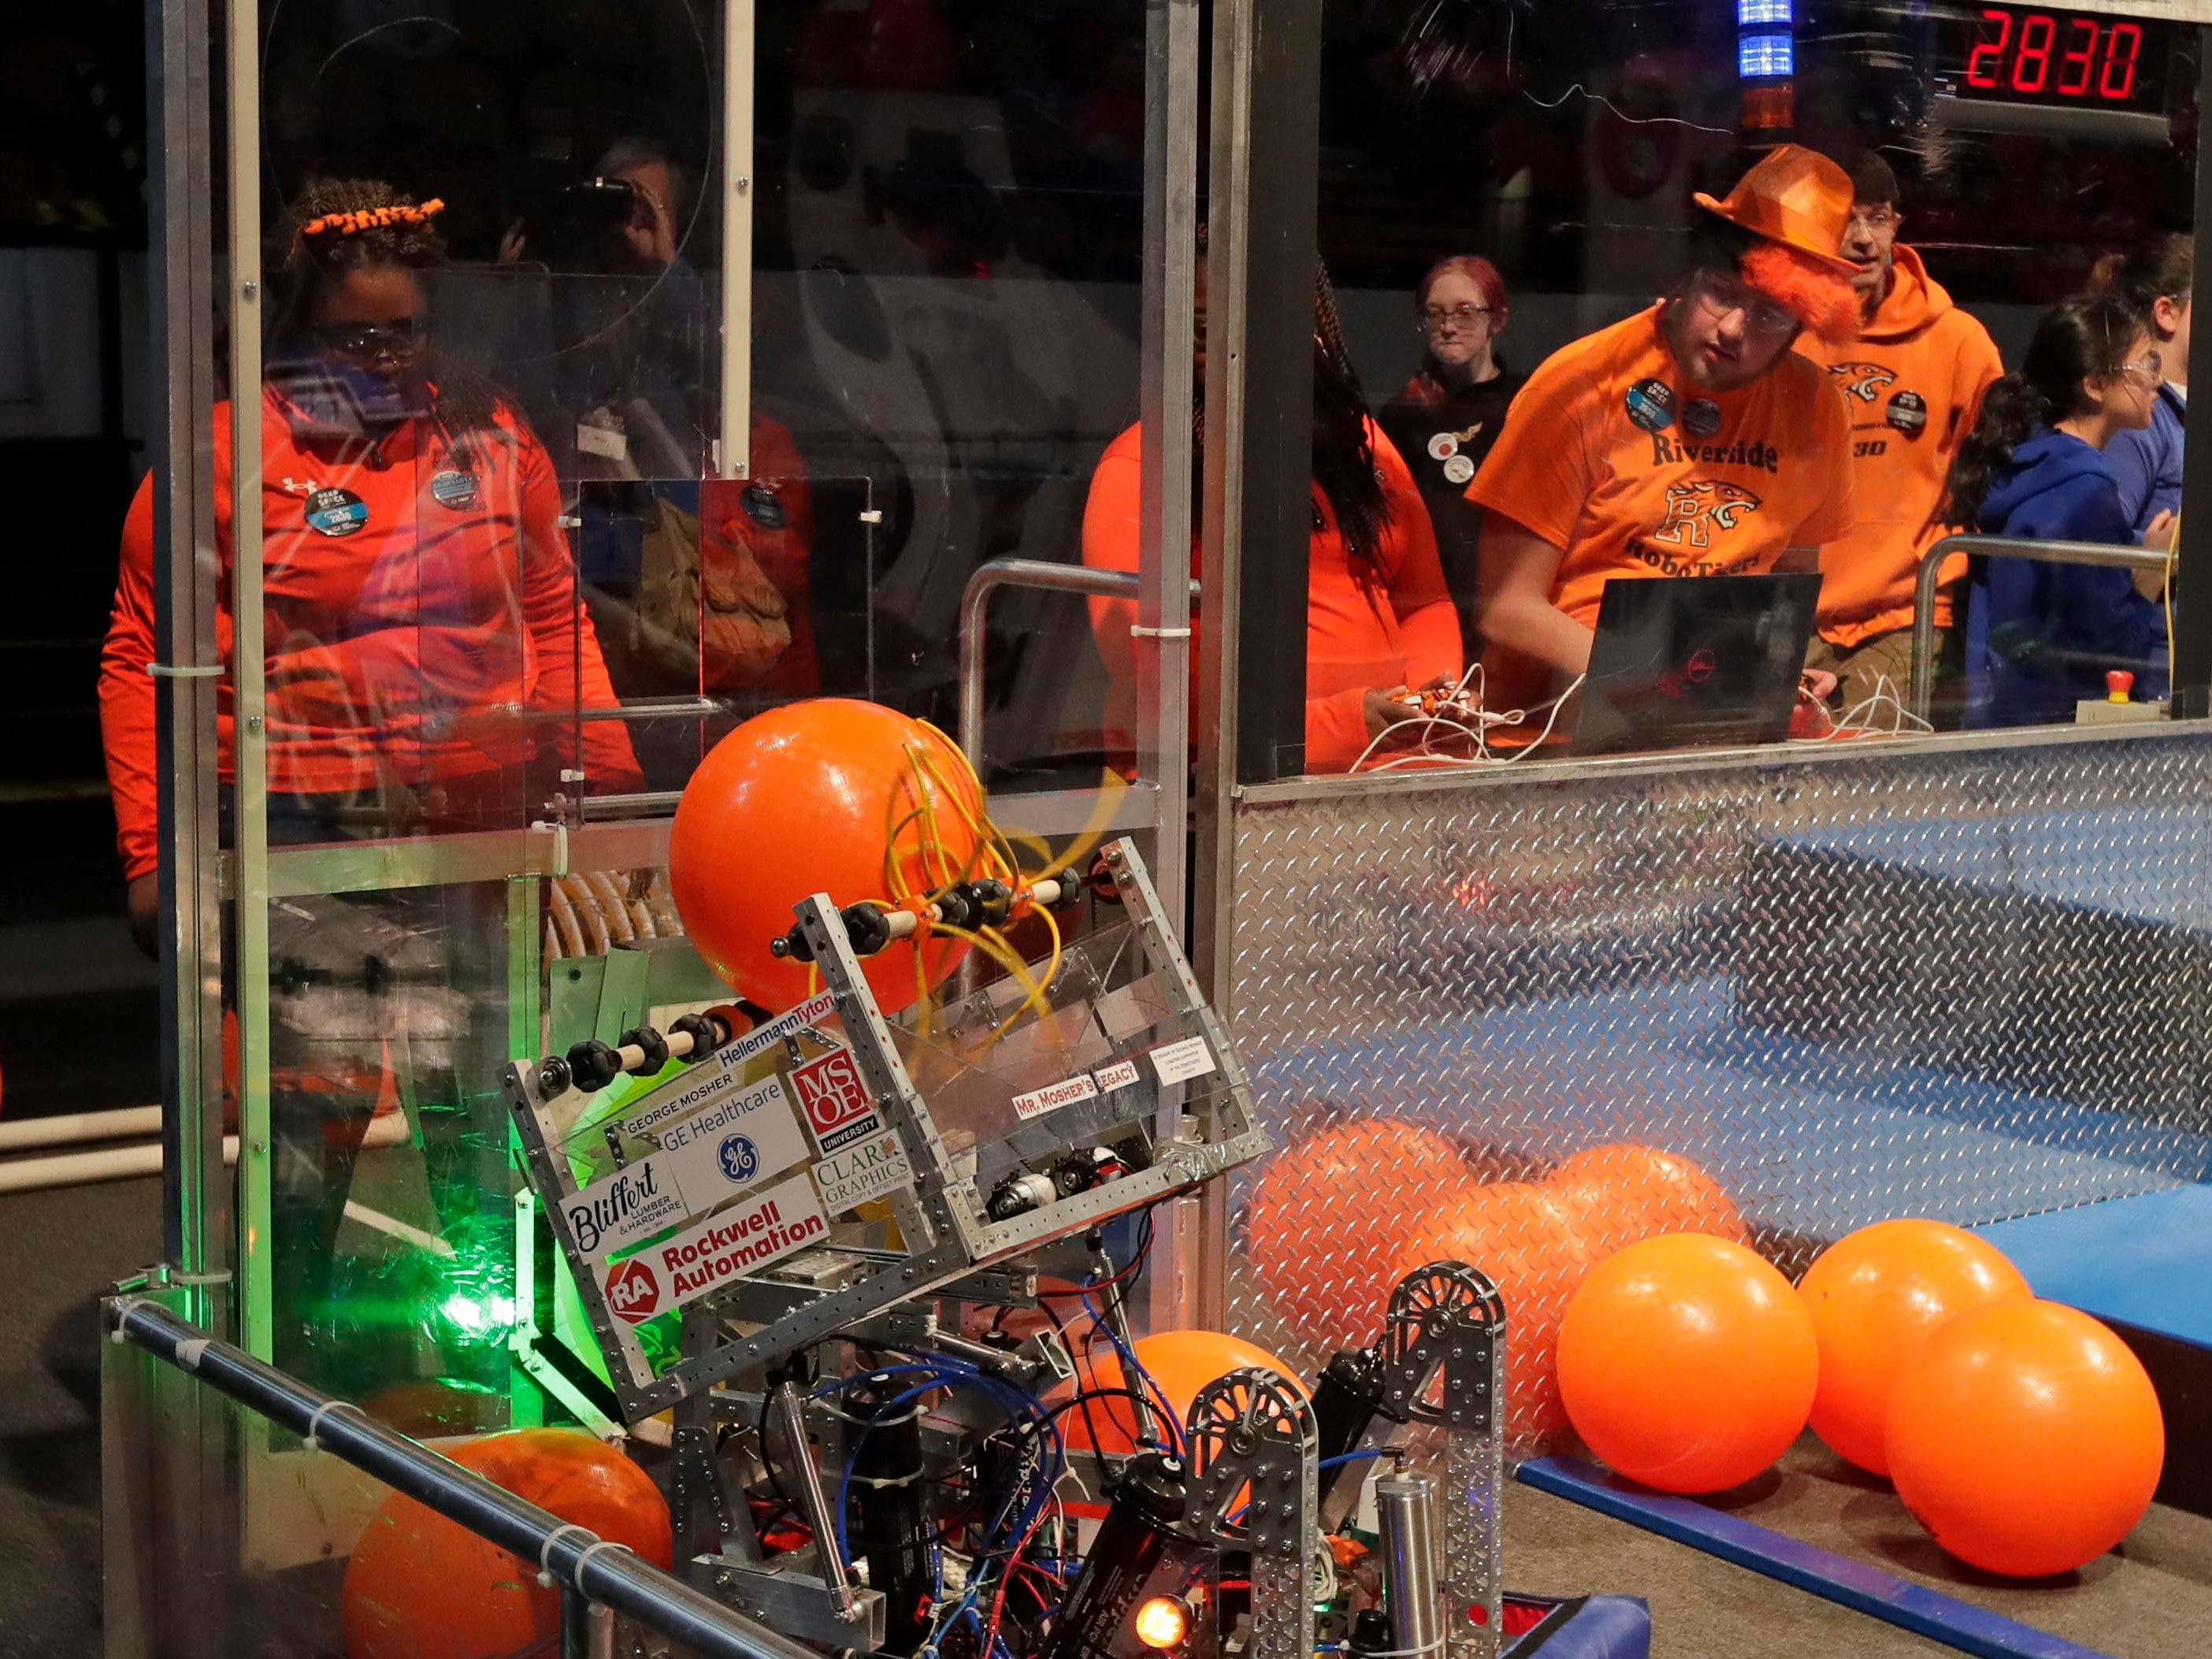 Operators Mikalayah Tulloch, Arianna Massey, Damien Berna and Mordechai Tinney  guide their 2830 robot during competition.